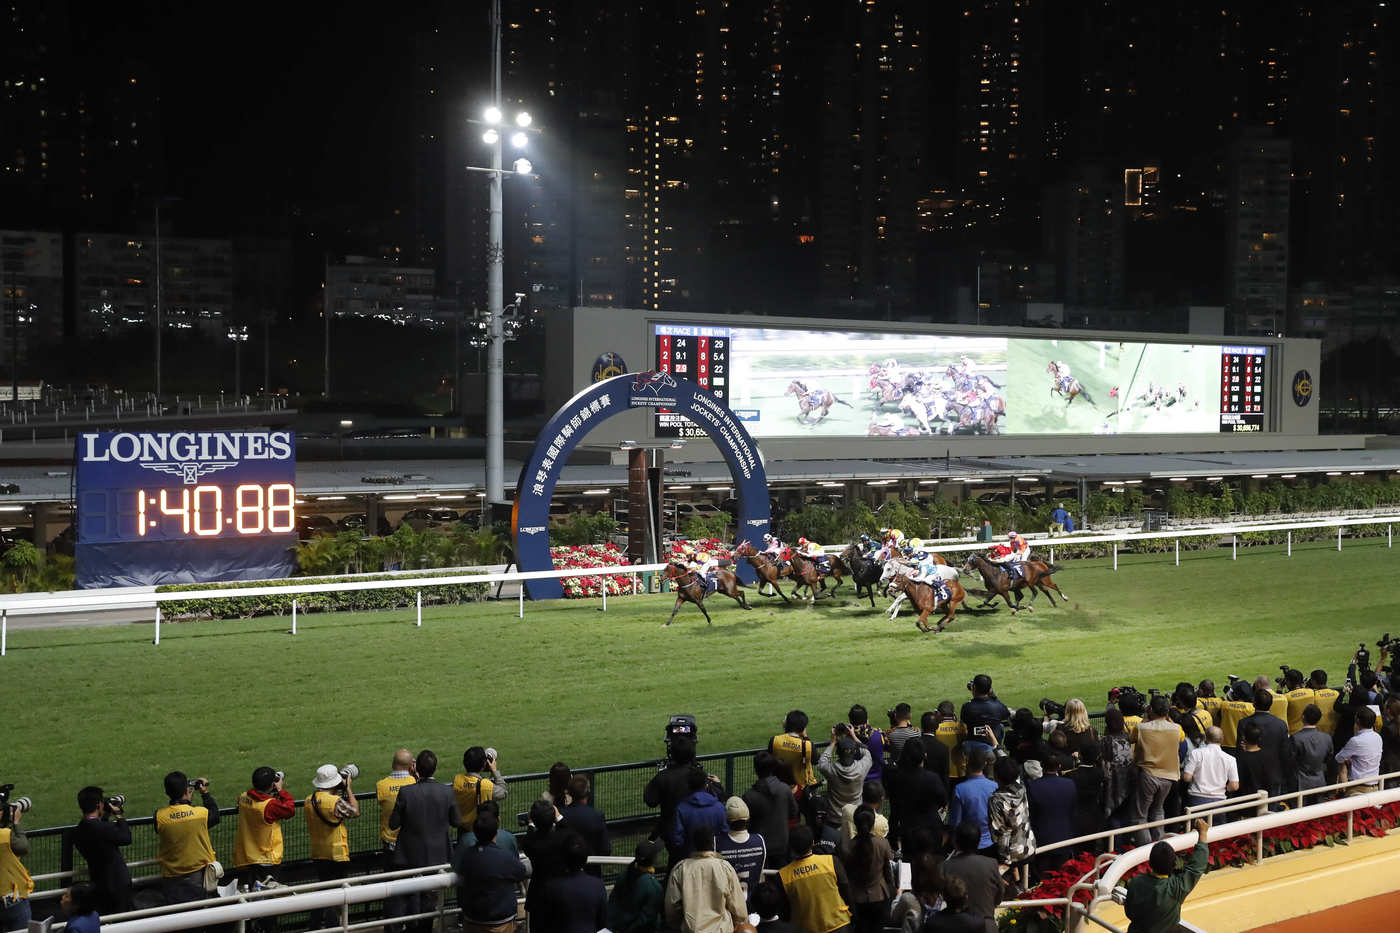 Longines Flat Racing Event: An electric atmosphere for the Longines International Jockeys' Championship 2016 3